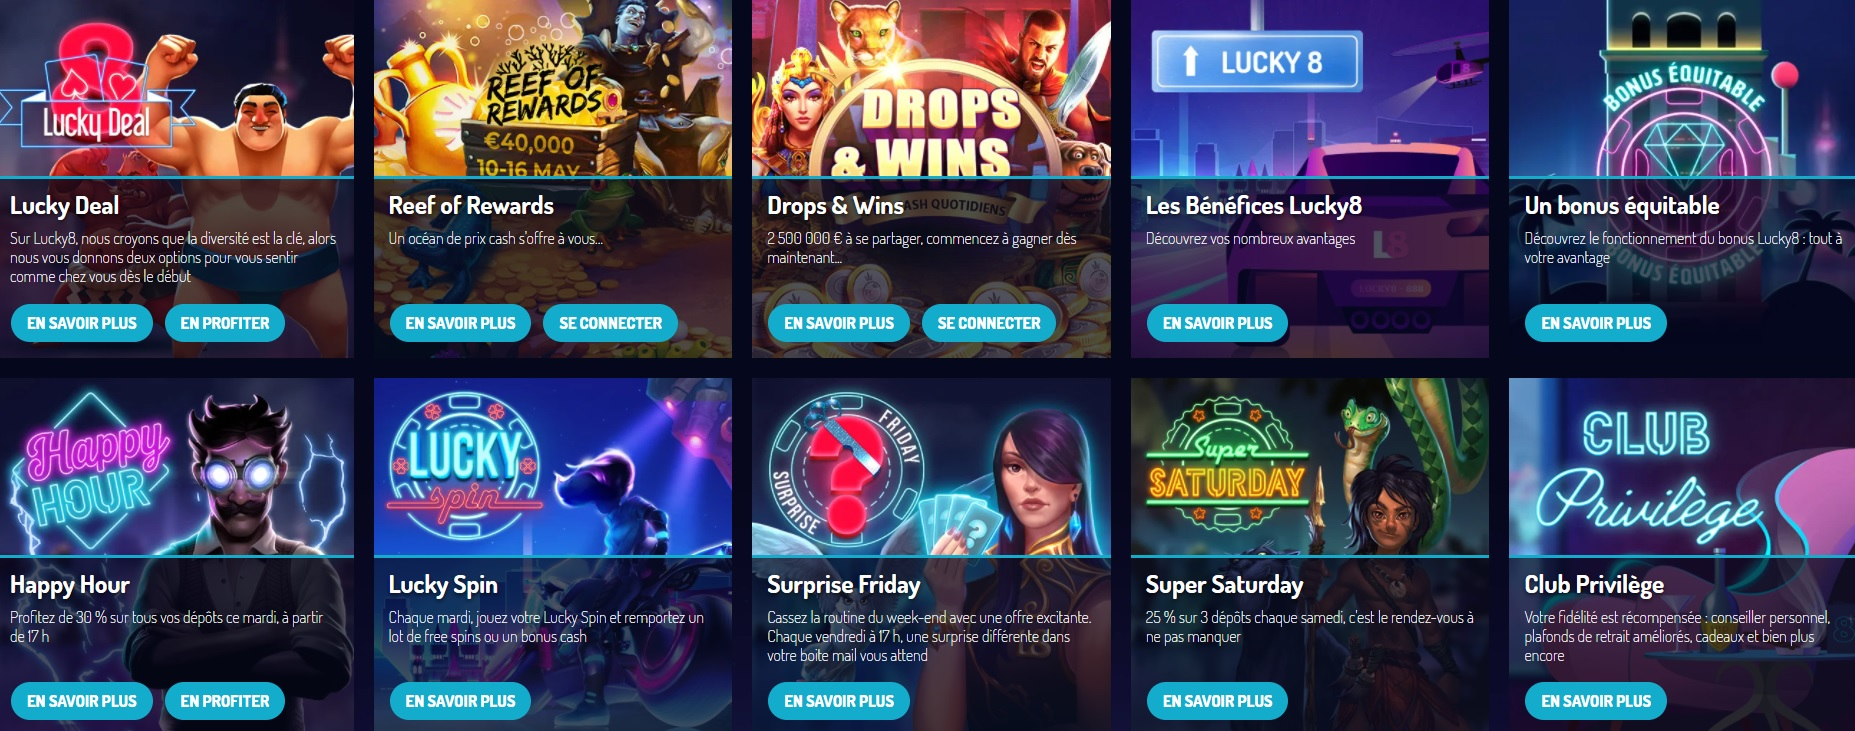 lucky8 promotions